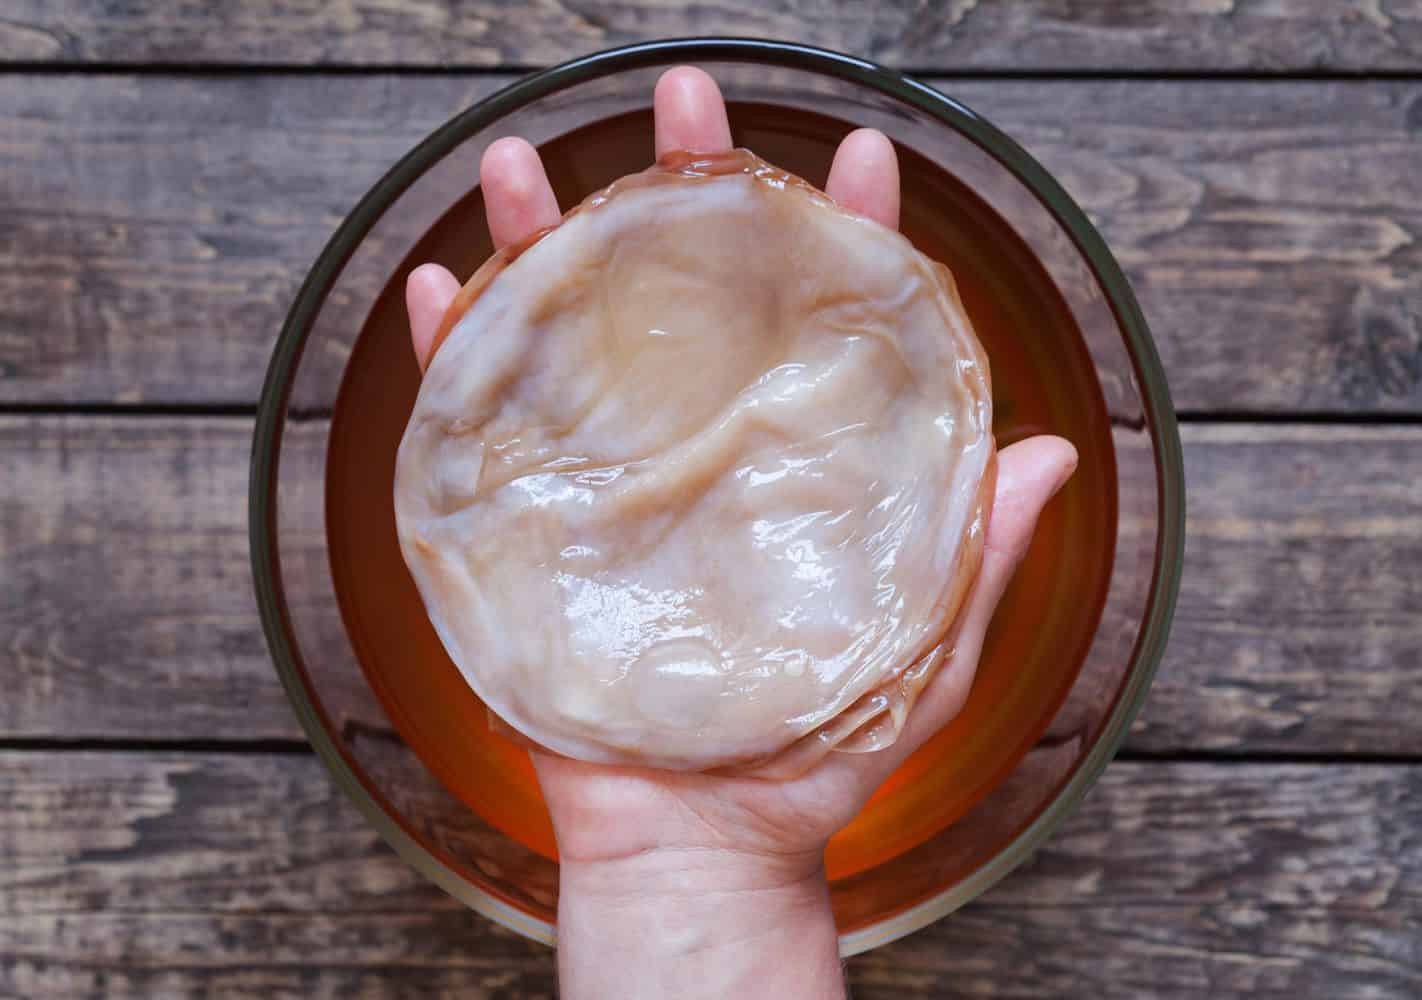 Scoby.